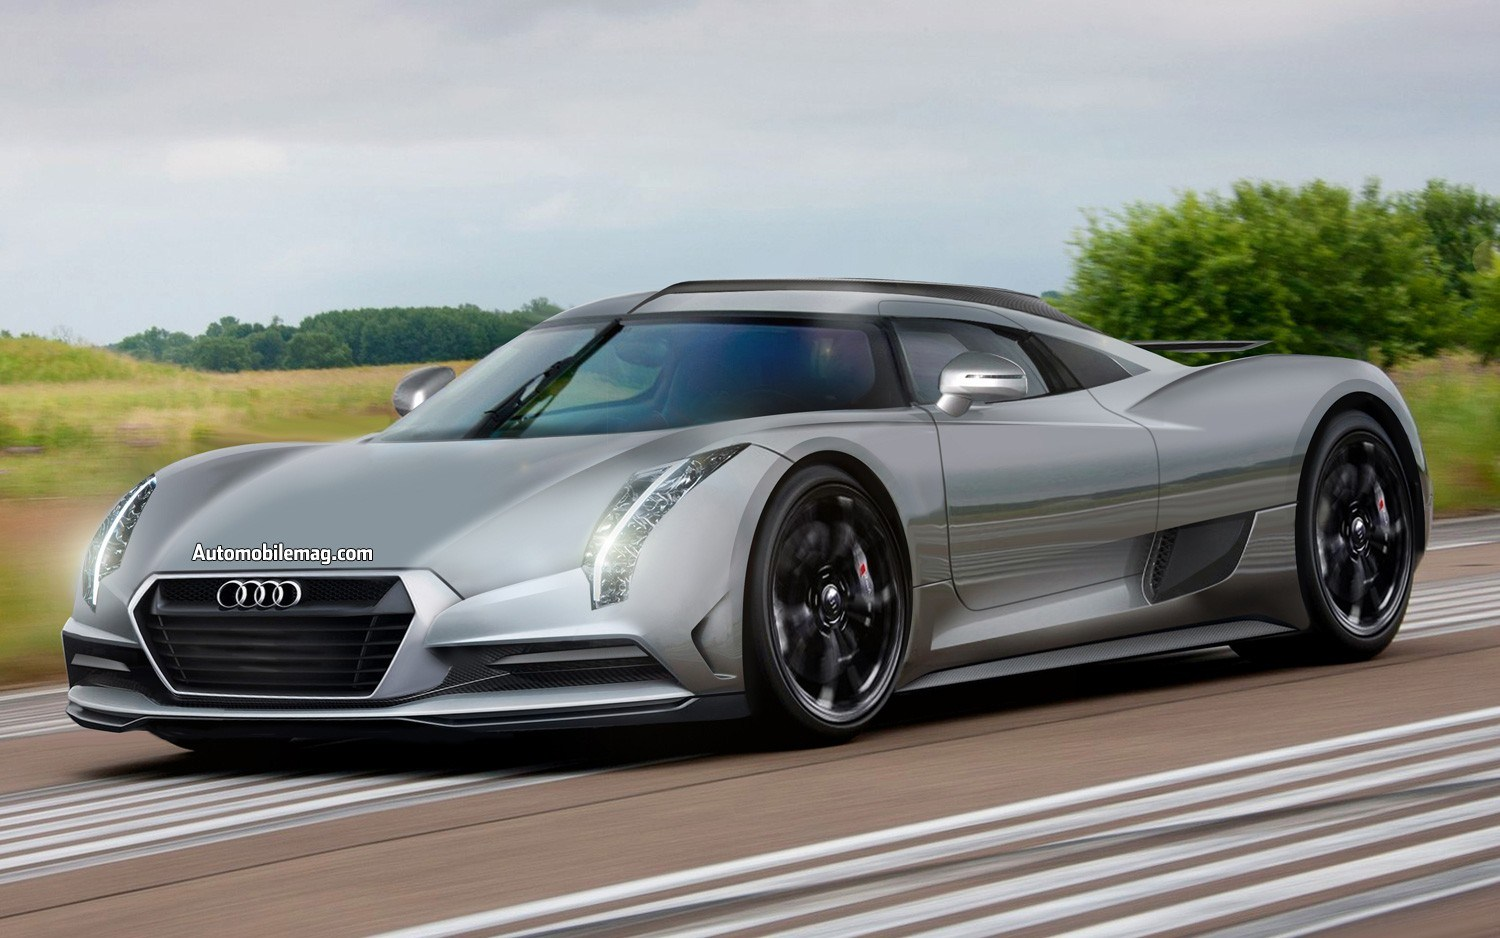 Our Wallpaper Cars Blog Provide 2017 Audi R20 Wallpapers Car With Cool Hd Photos Woith Various Resolutions 2 Pictures